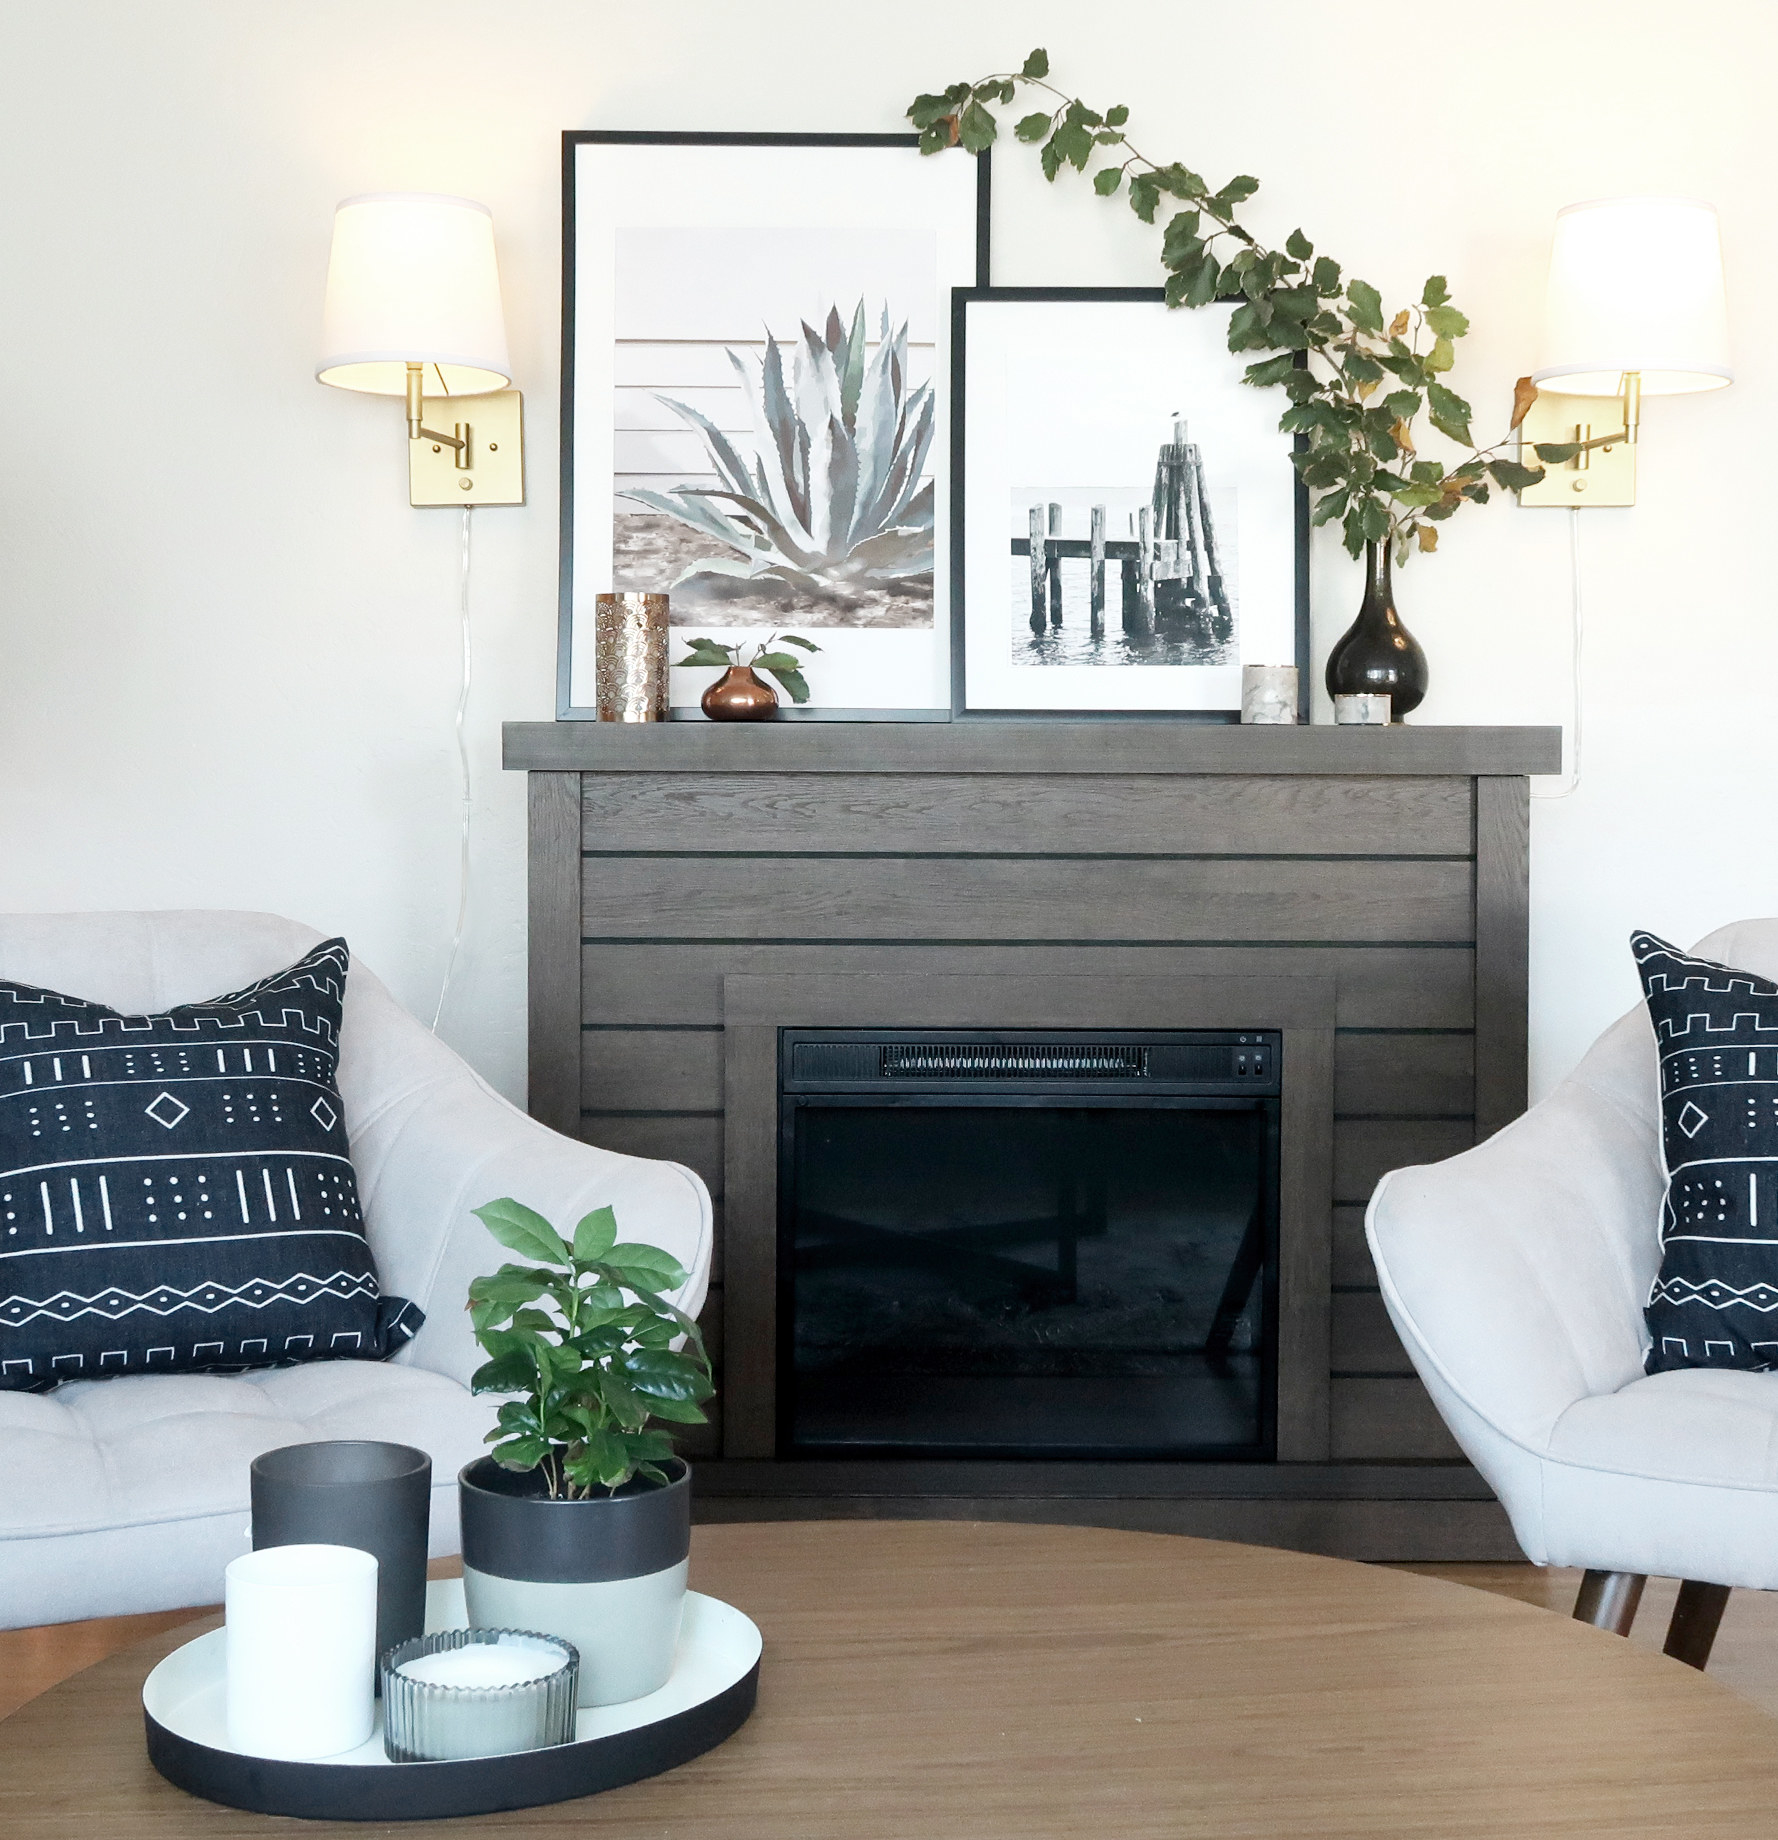 A faux fireplace, with decor on its mantle, is the focal point between two armchairs